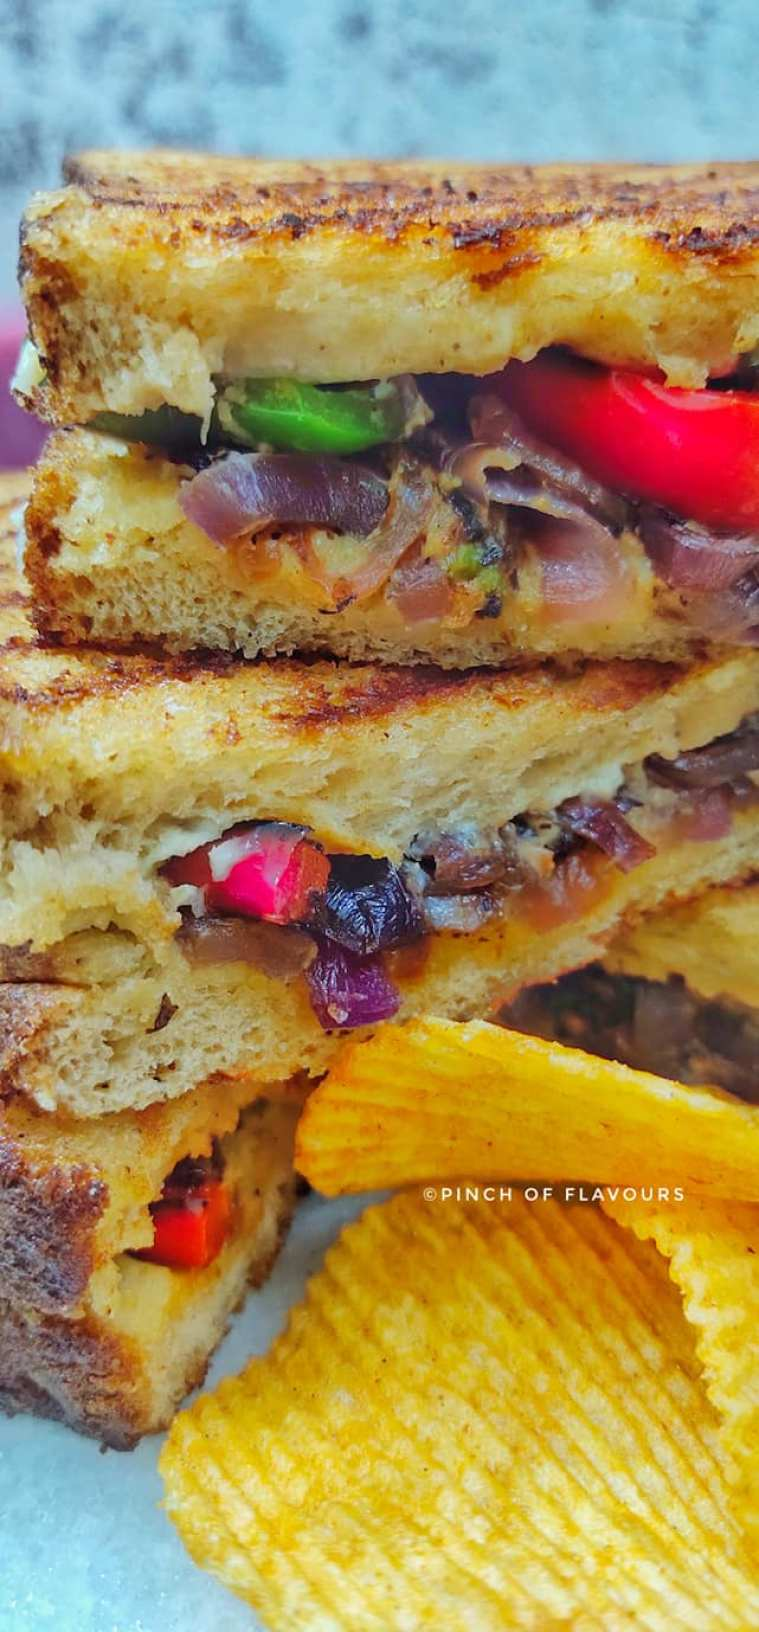 Quick & Easy Grilled Hummus Sandwich With Caramelized Onions